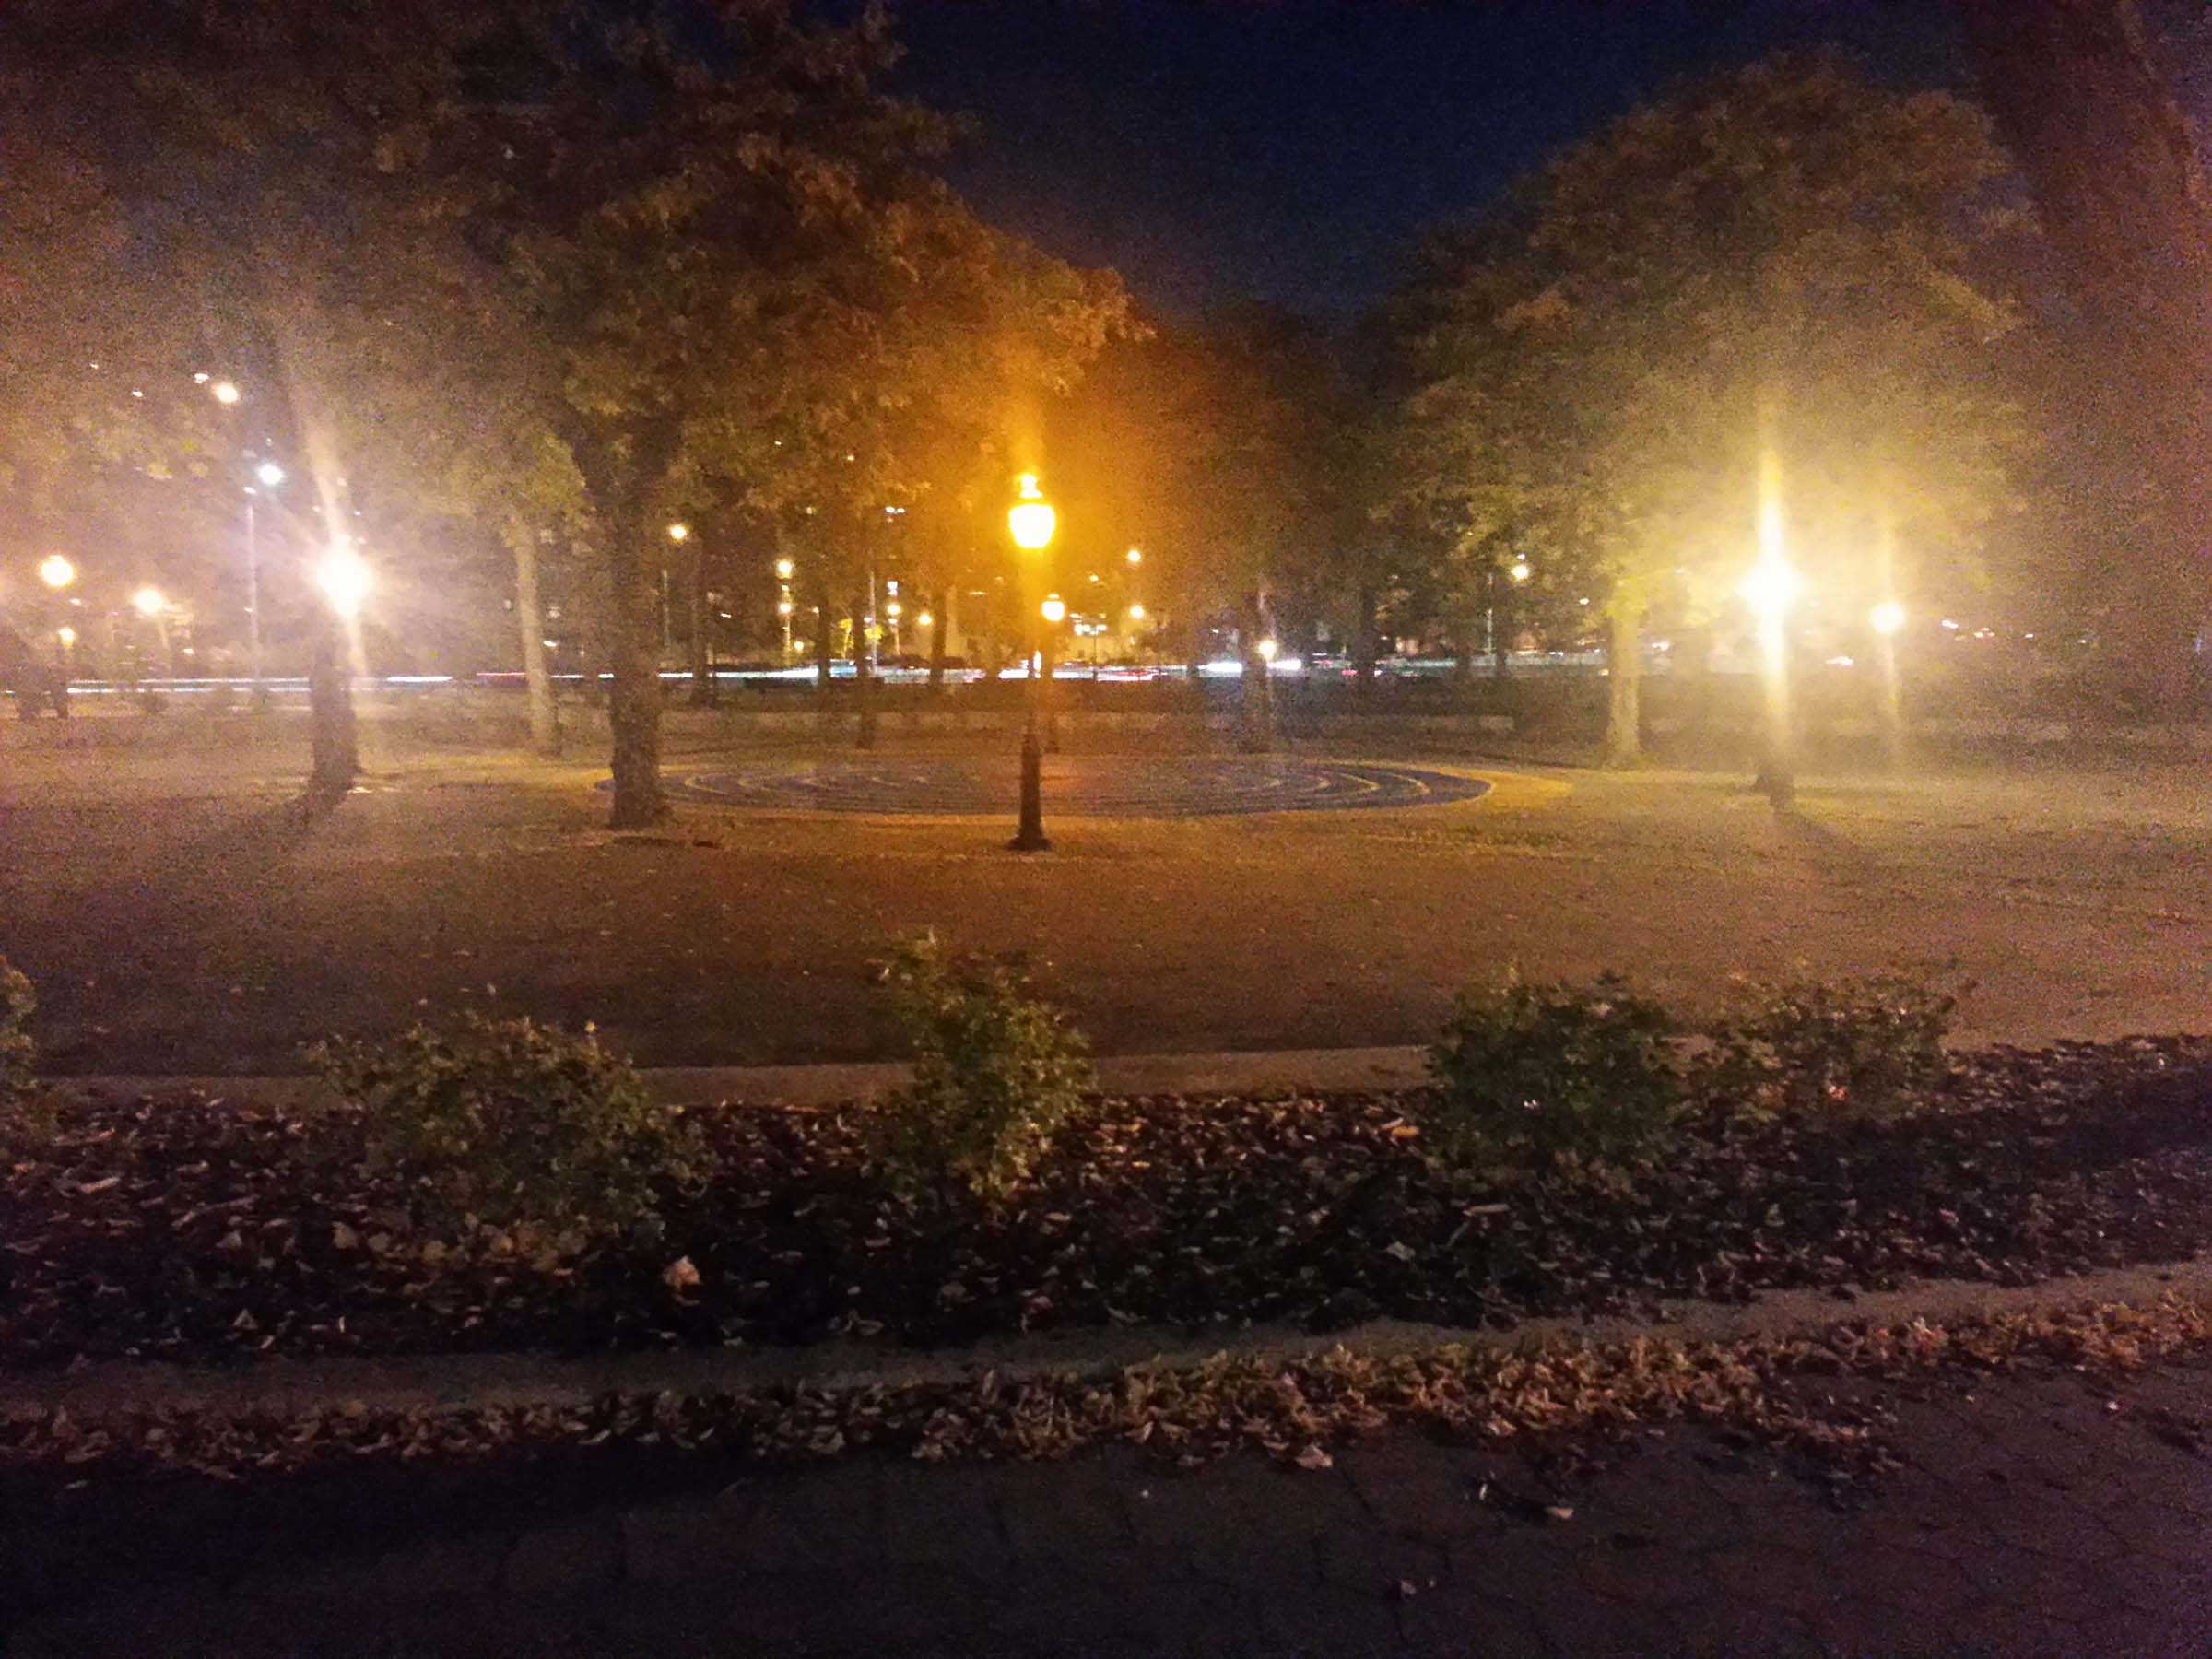 An empty courtyard at night. At its center is a circle of pavement with spiraling lines on it. It is surrounded by a ring of trees and lamp posts.